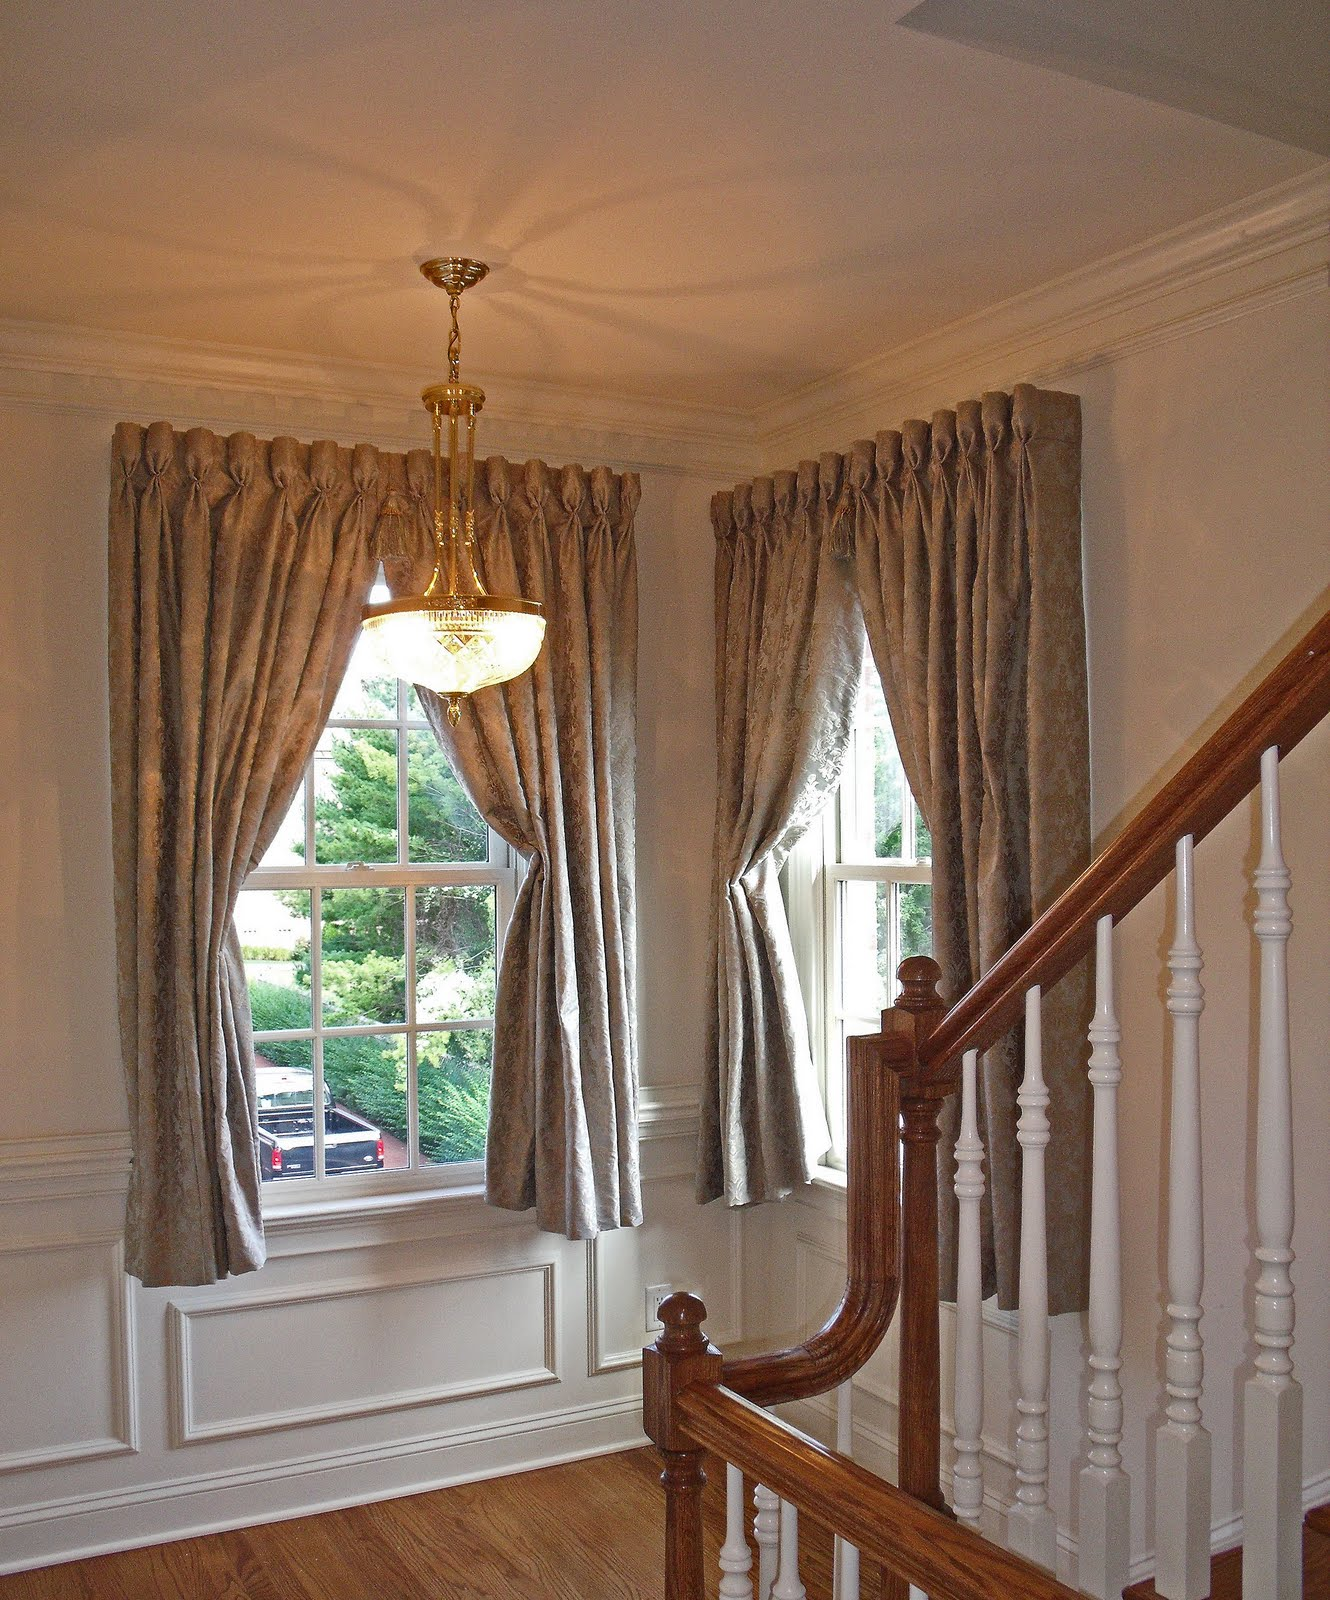 Decorating ideas to window treatments for casement windows Ceiling window